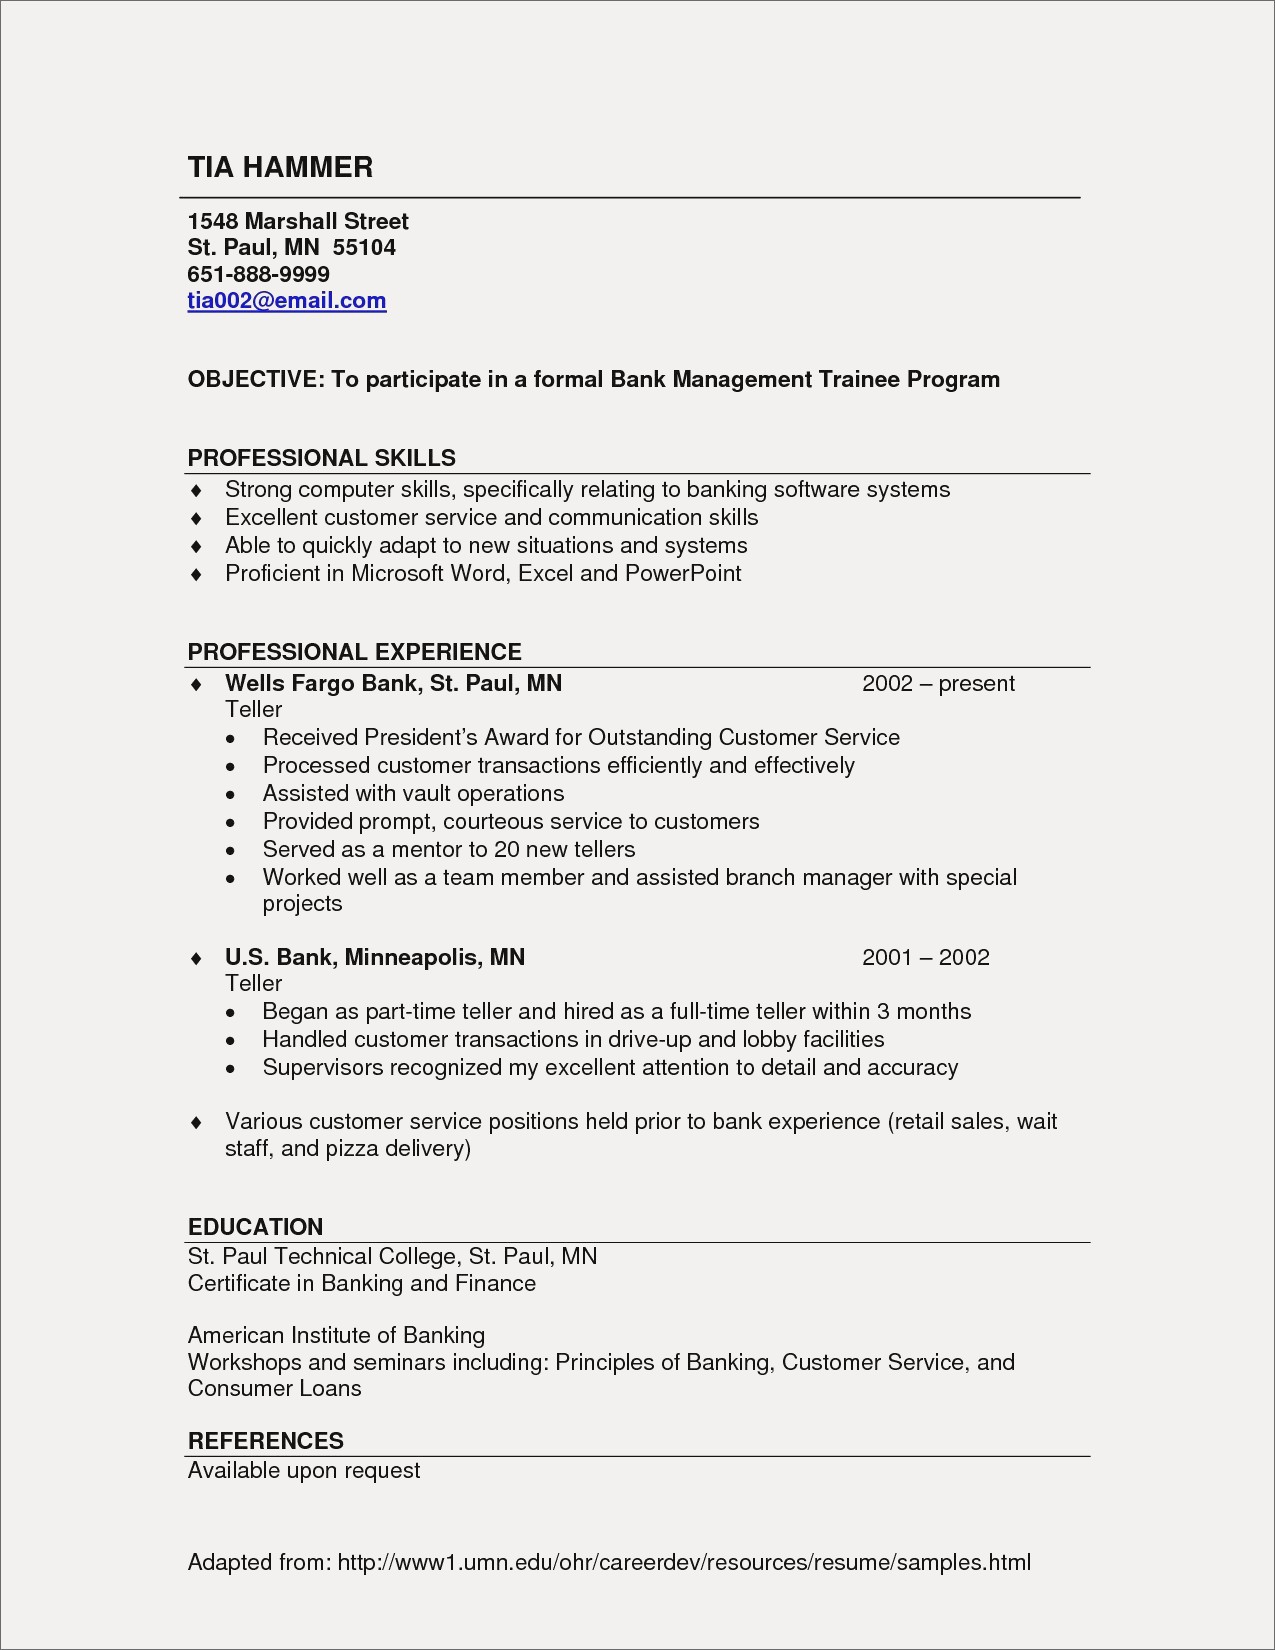 customer service objective resume sample Collection-Resume Sample Example Best Customer Service Resume Sample Beautiful Resume Examples 0d Skills 19-d